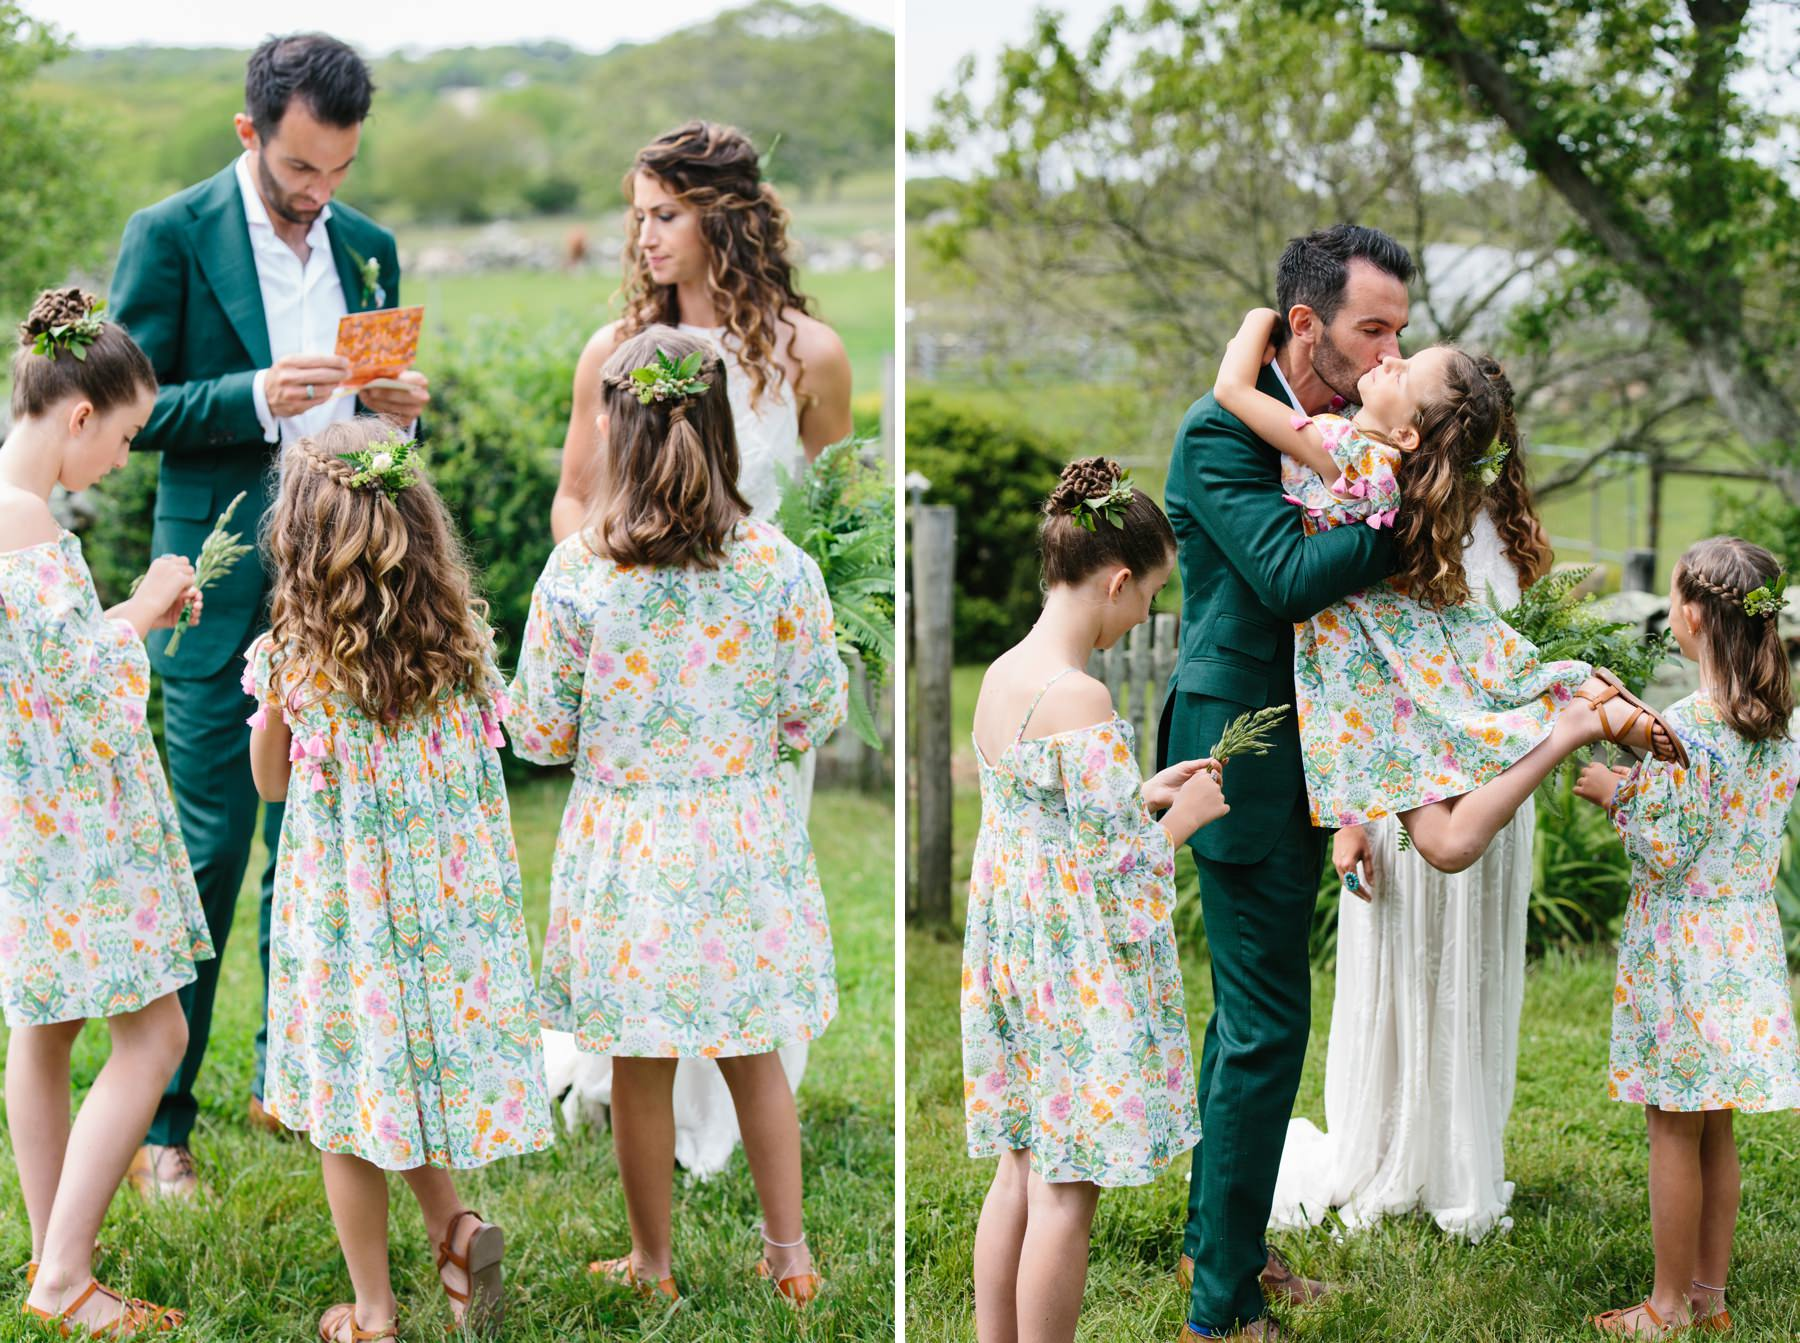 mixed family wedding traditions